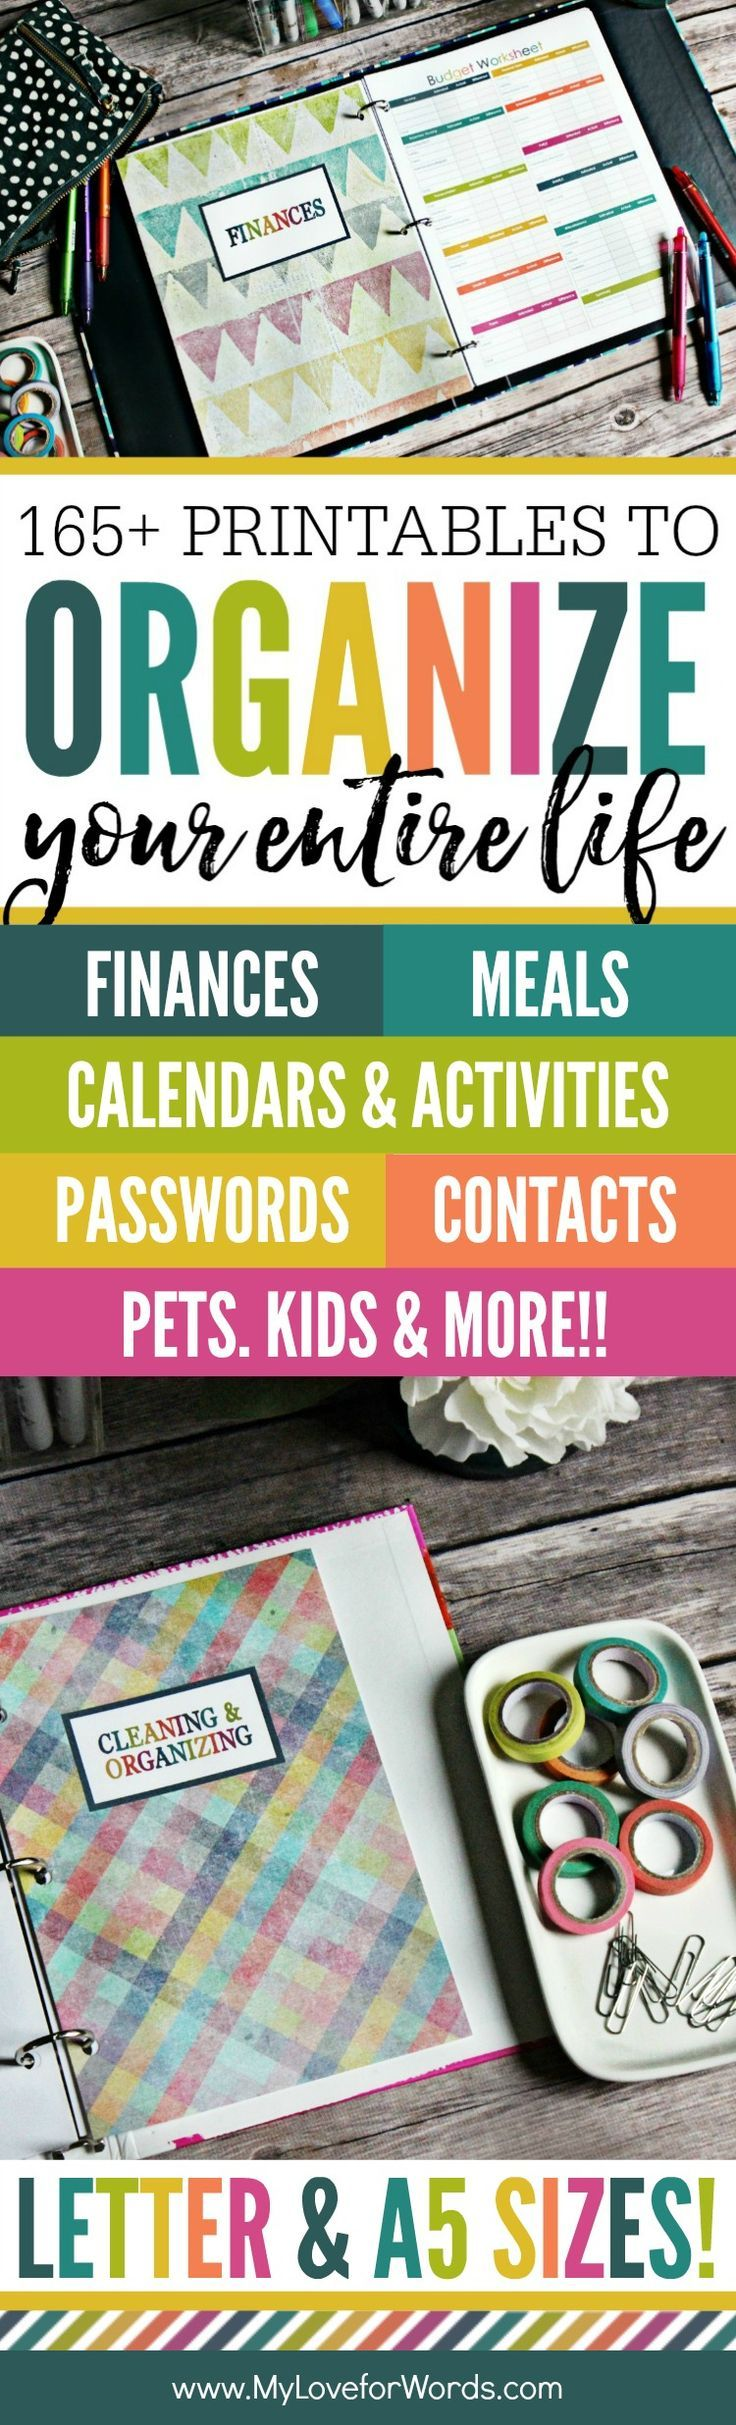 Getting organized just got easier!! This printable planner is perfect for organizing your time, daily, weekly, and monthly activities, cleaning routine, meal planning, finances, kids, pets, passwords, contacts, and more! Just about anything you'd want to schedule can be tracked and organized while reducing the paperwork floating around your home! It has more than 165 different printables and comes in both the standard letter and A5 sizes.